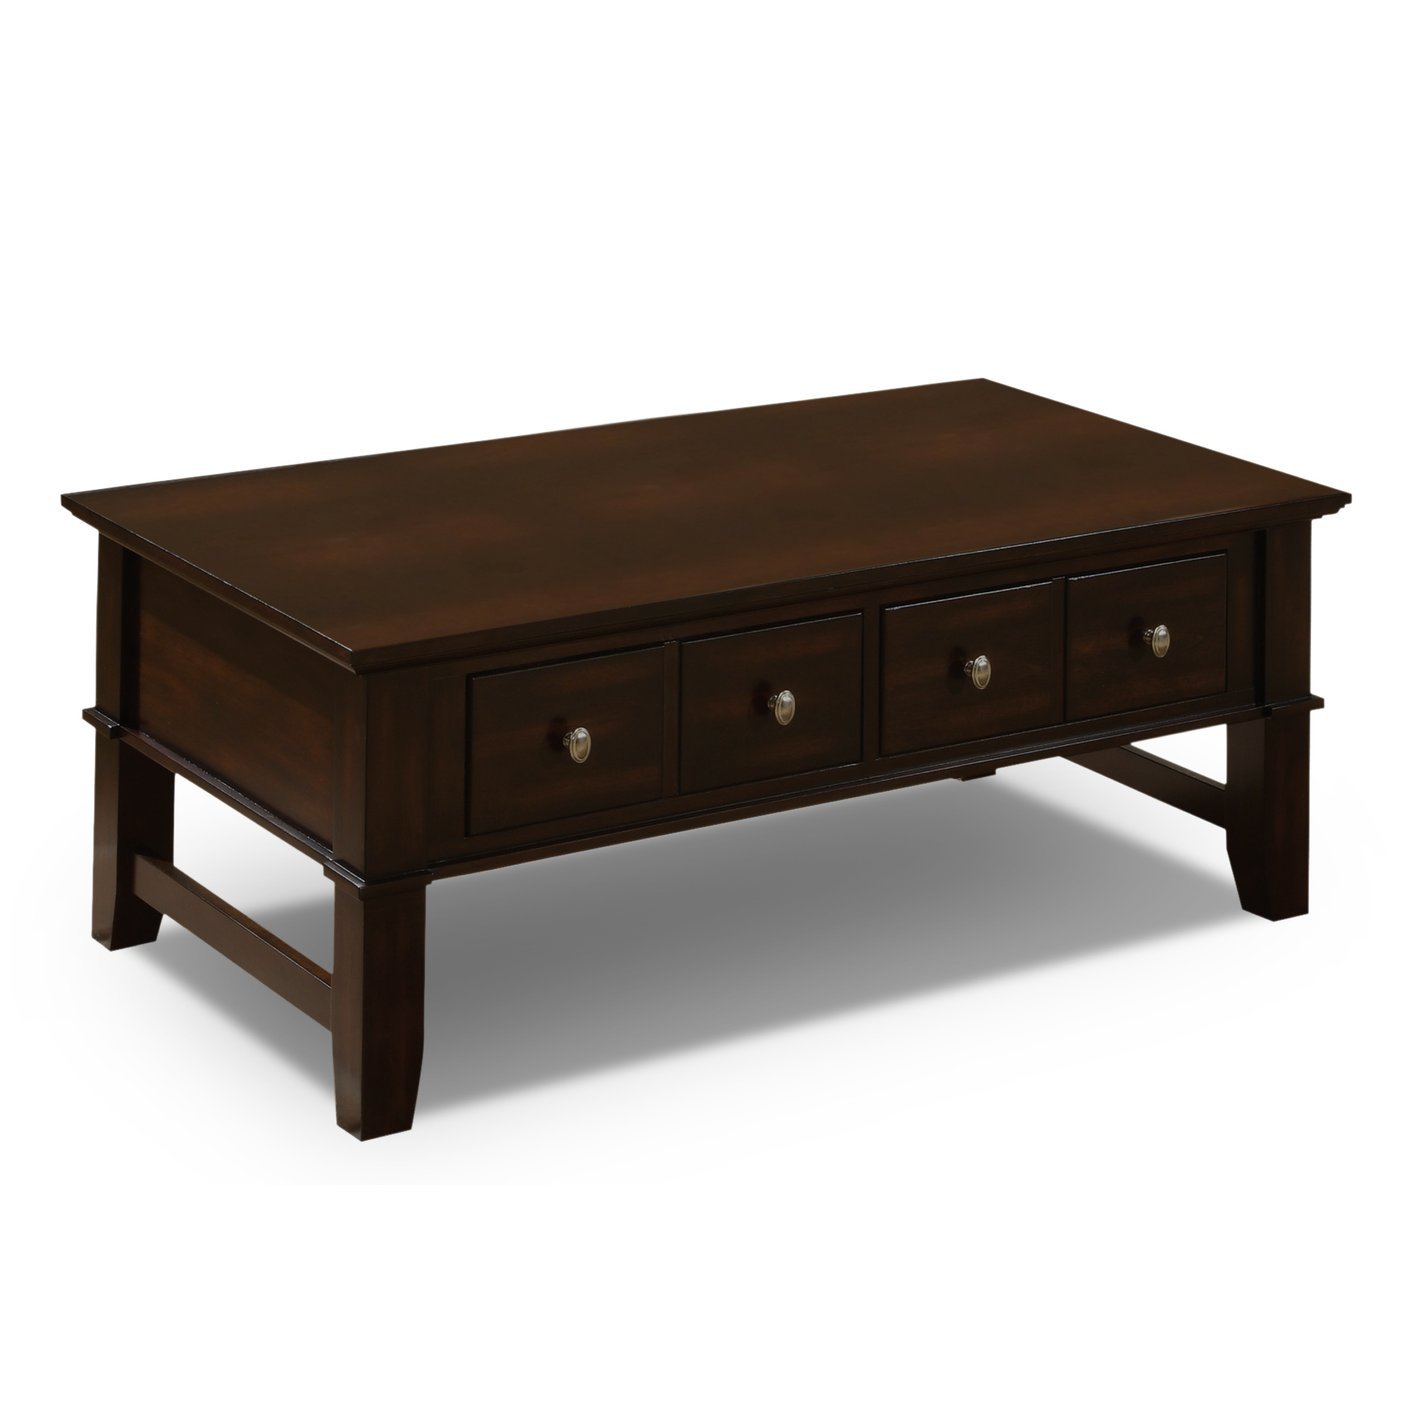 Brown Wood Coffee Table Steal A Sofa Furniture Outlet Los Angeles Ca